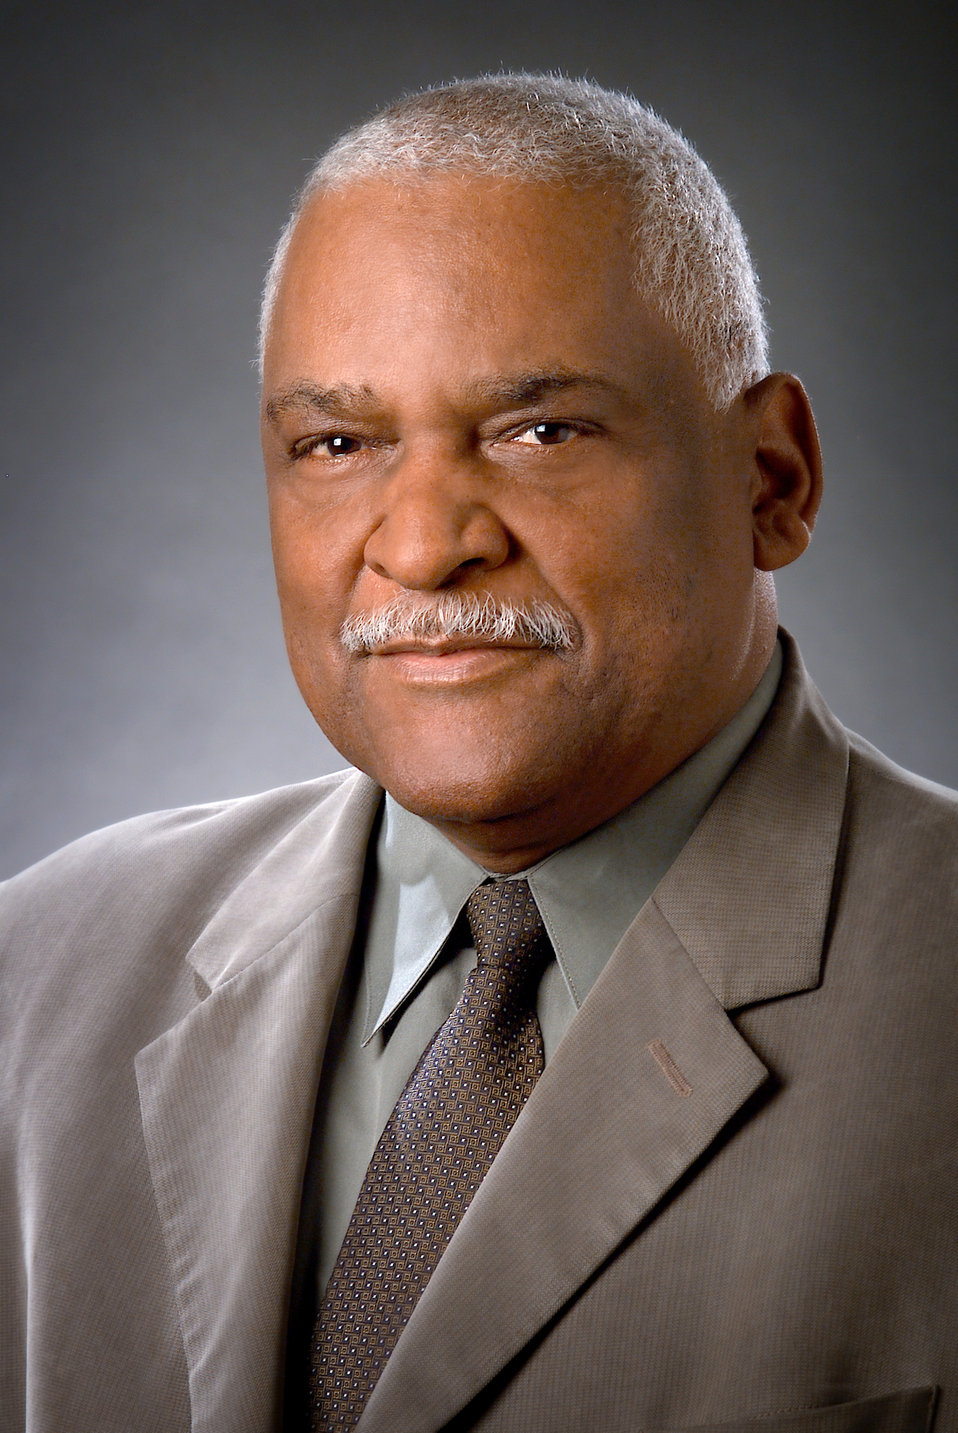 This is Mr. Joseph R. Carter, Deputy Chief Operating Officer, Office of the Chief Operating Officer, CDC/ATSDR, 2004.